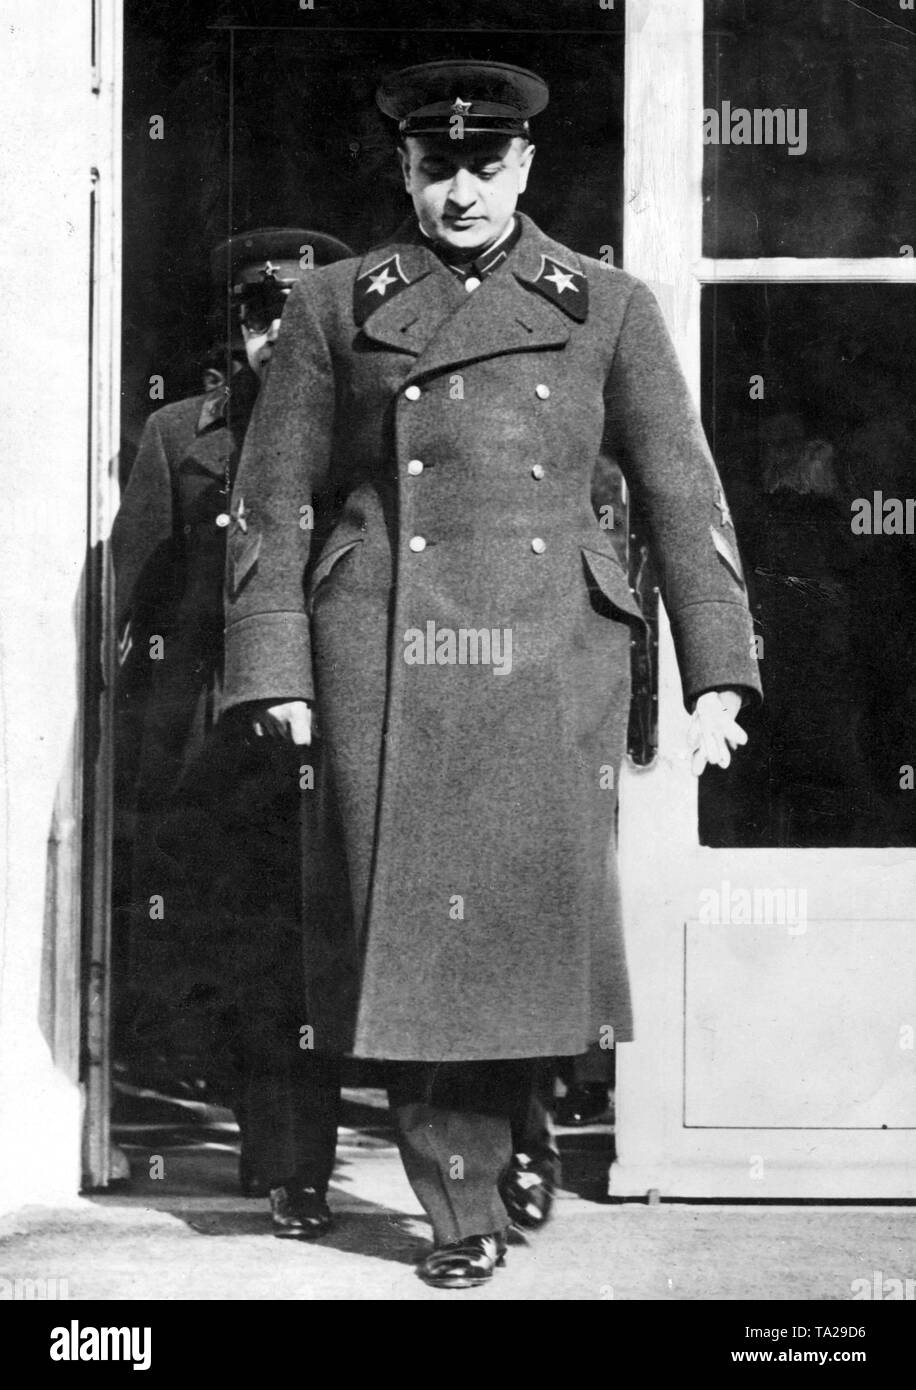 Mikhail Tukhachevsky, Marshal of the Soviet Union, during a visit to Paris in 1936. - Stock Image